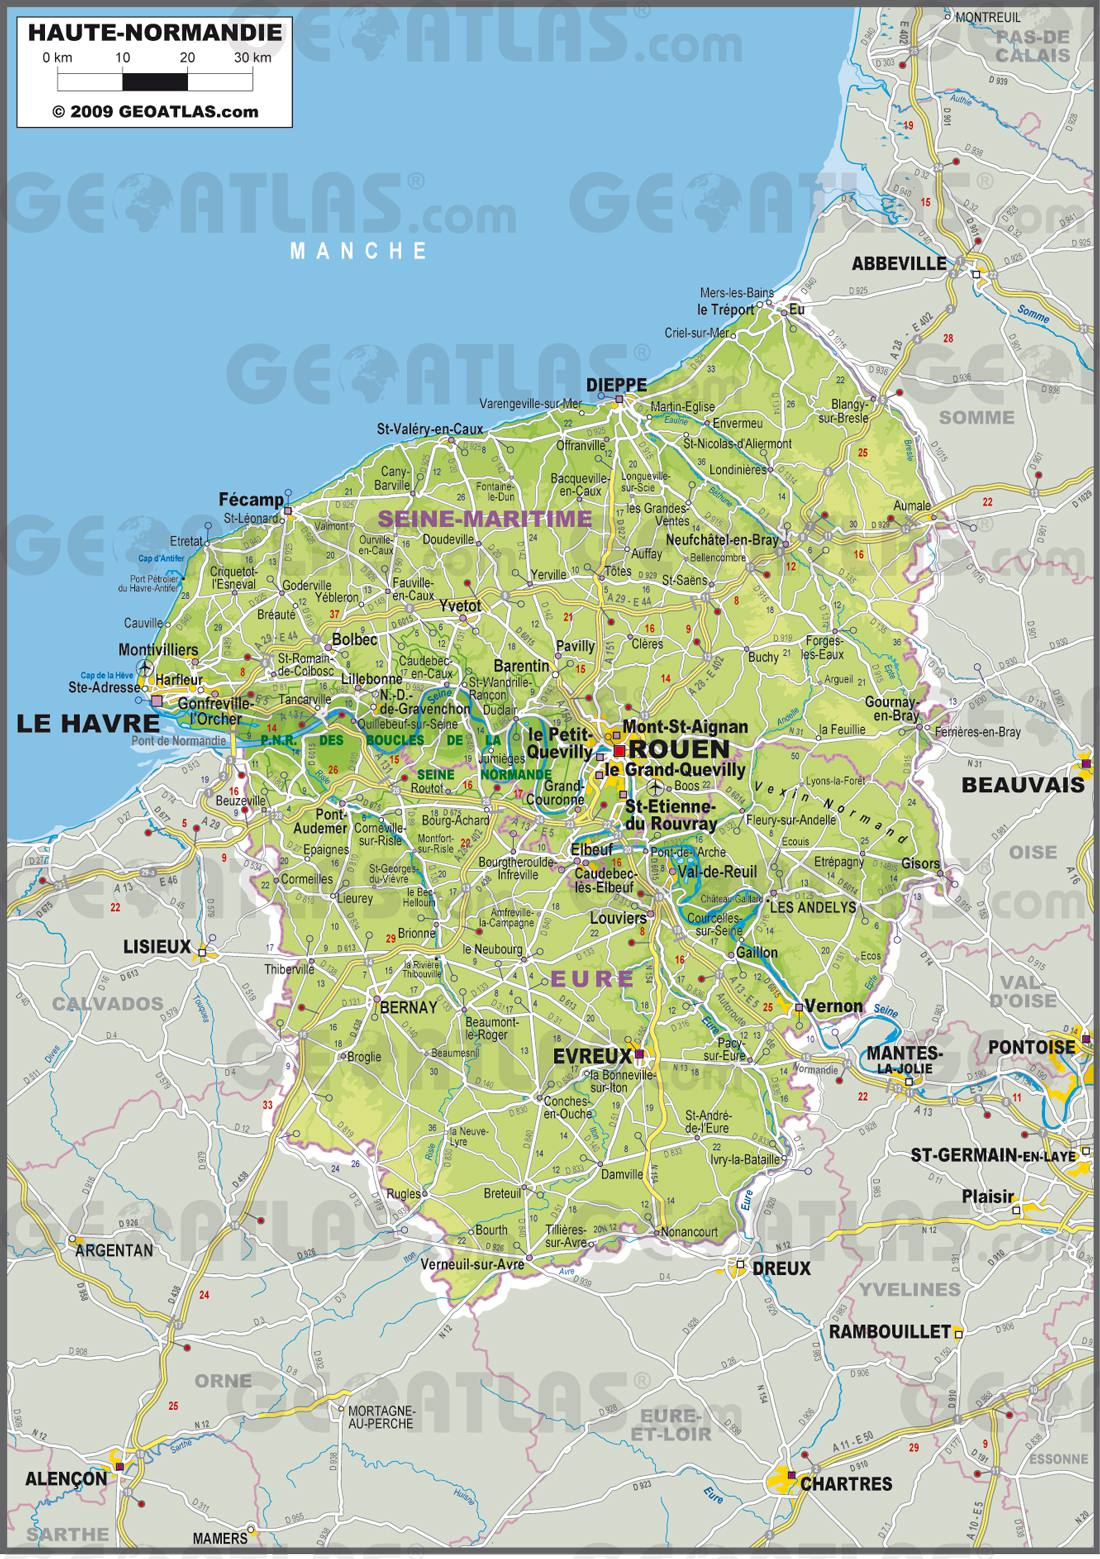 Haute-Normandie carte